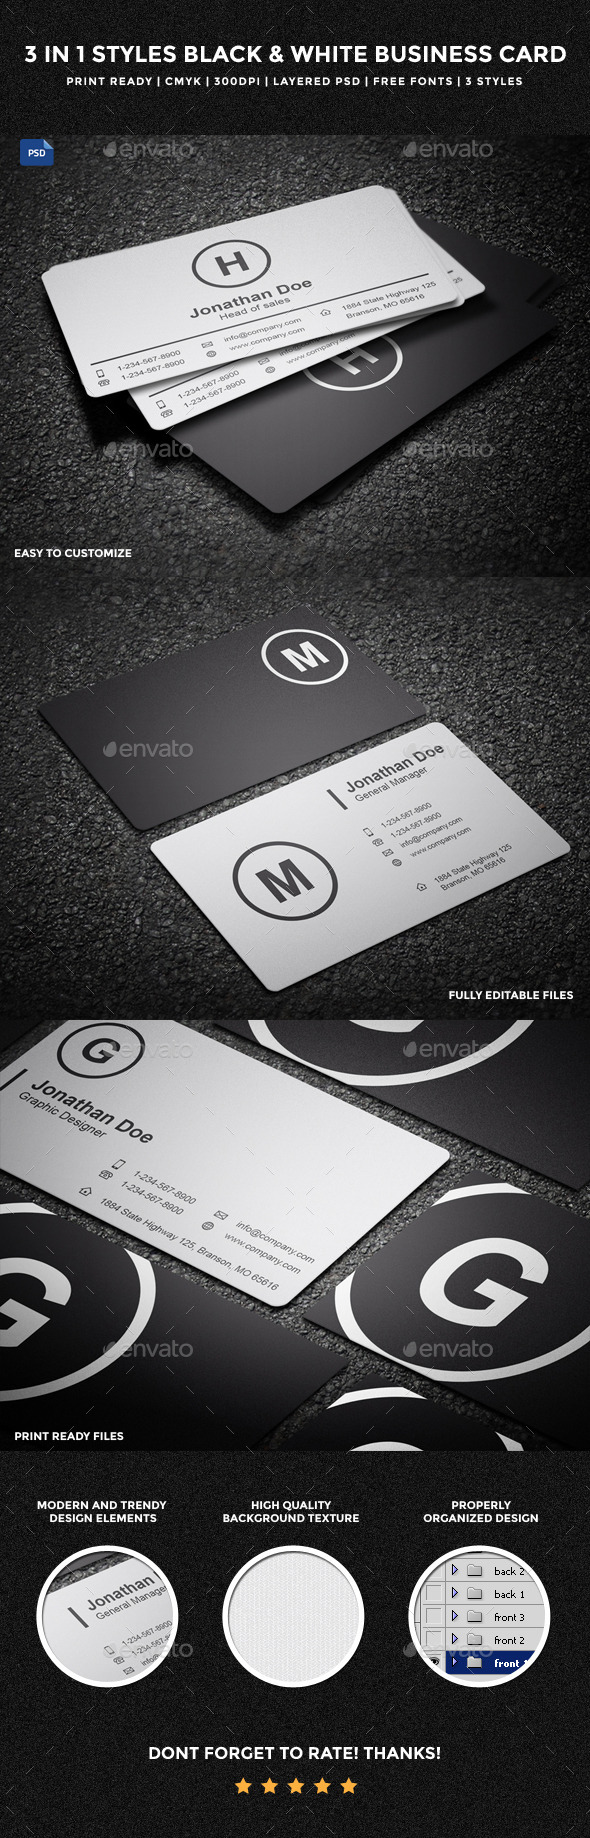 3 in 1 Styles Black & White Business Card - 14 - Corporate Business Cards